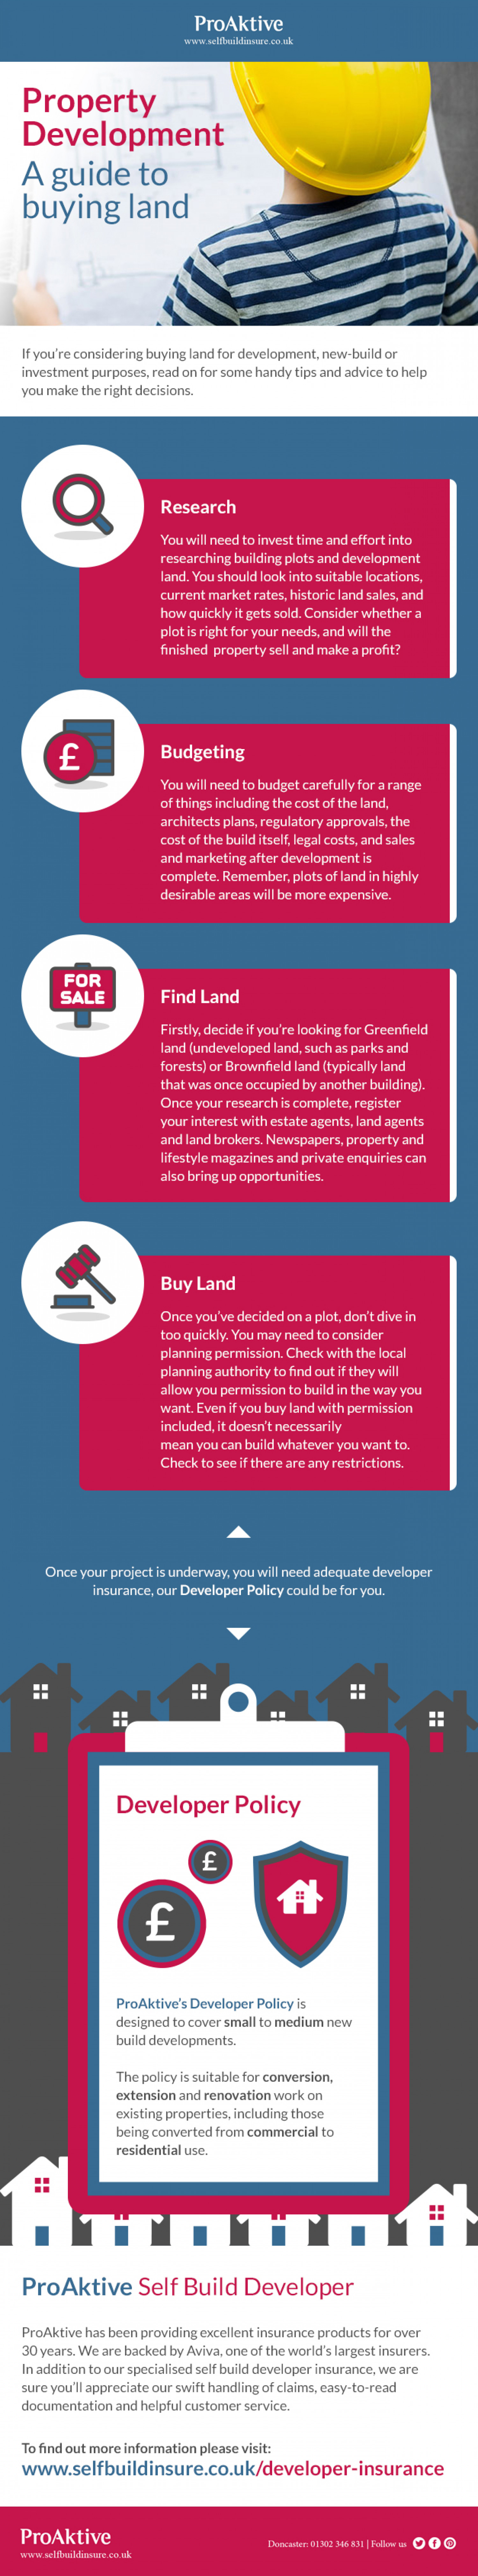 Property Development: A Guide to Buying Land Infographic